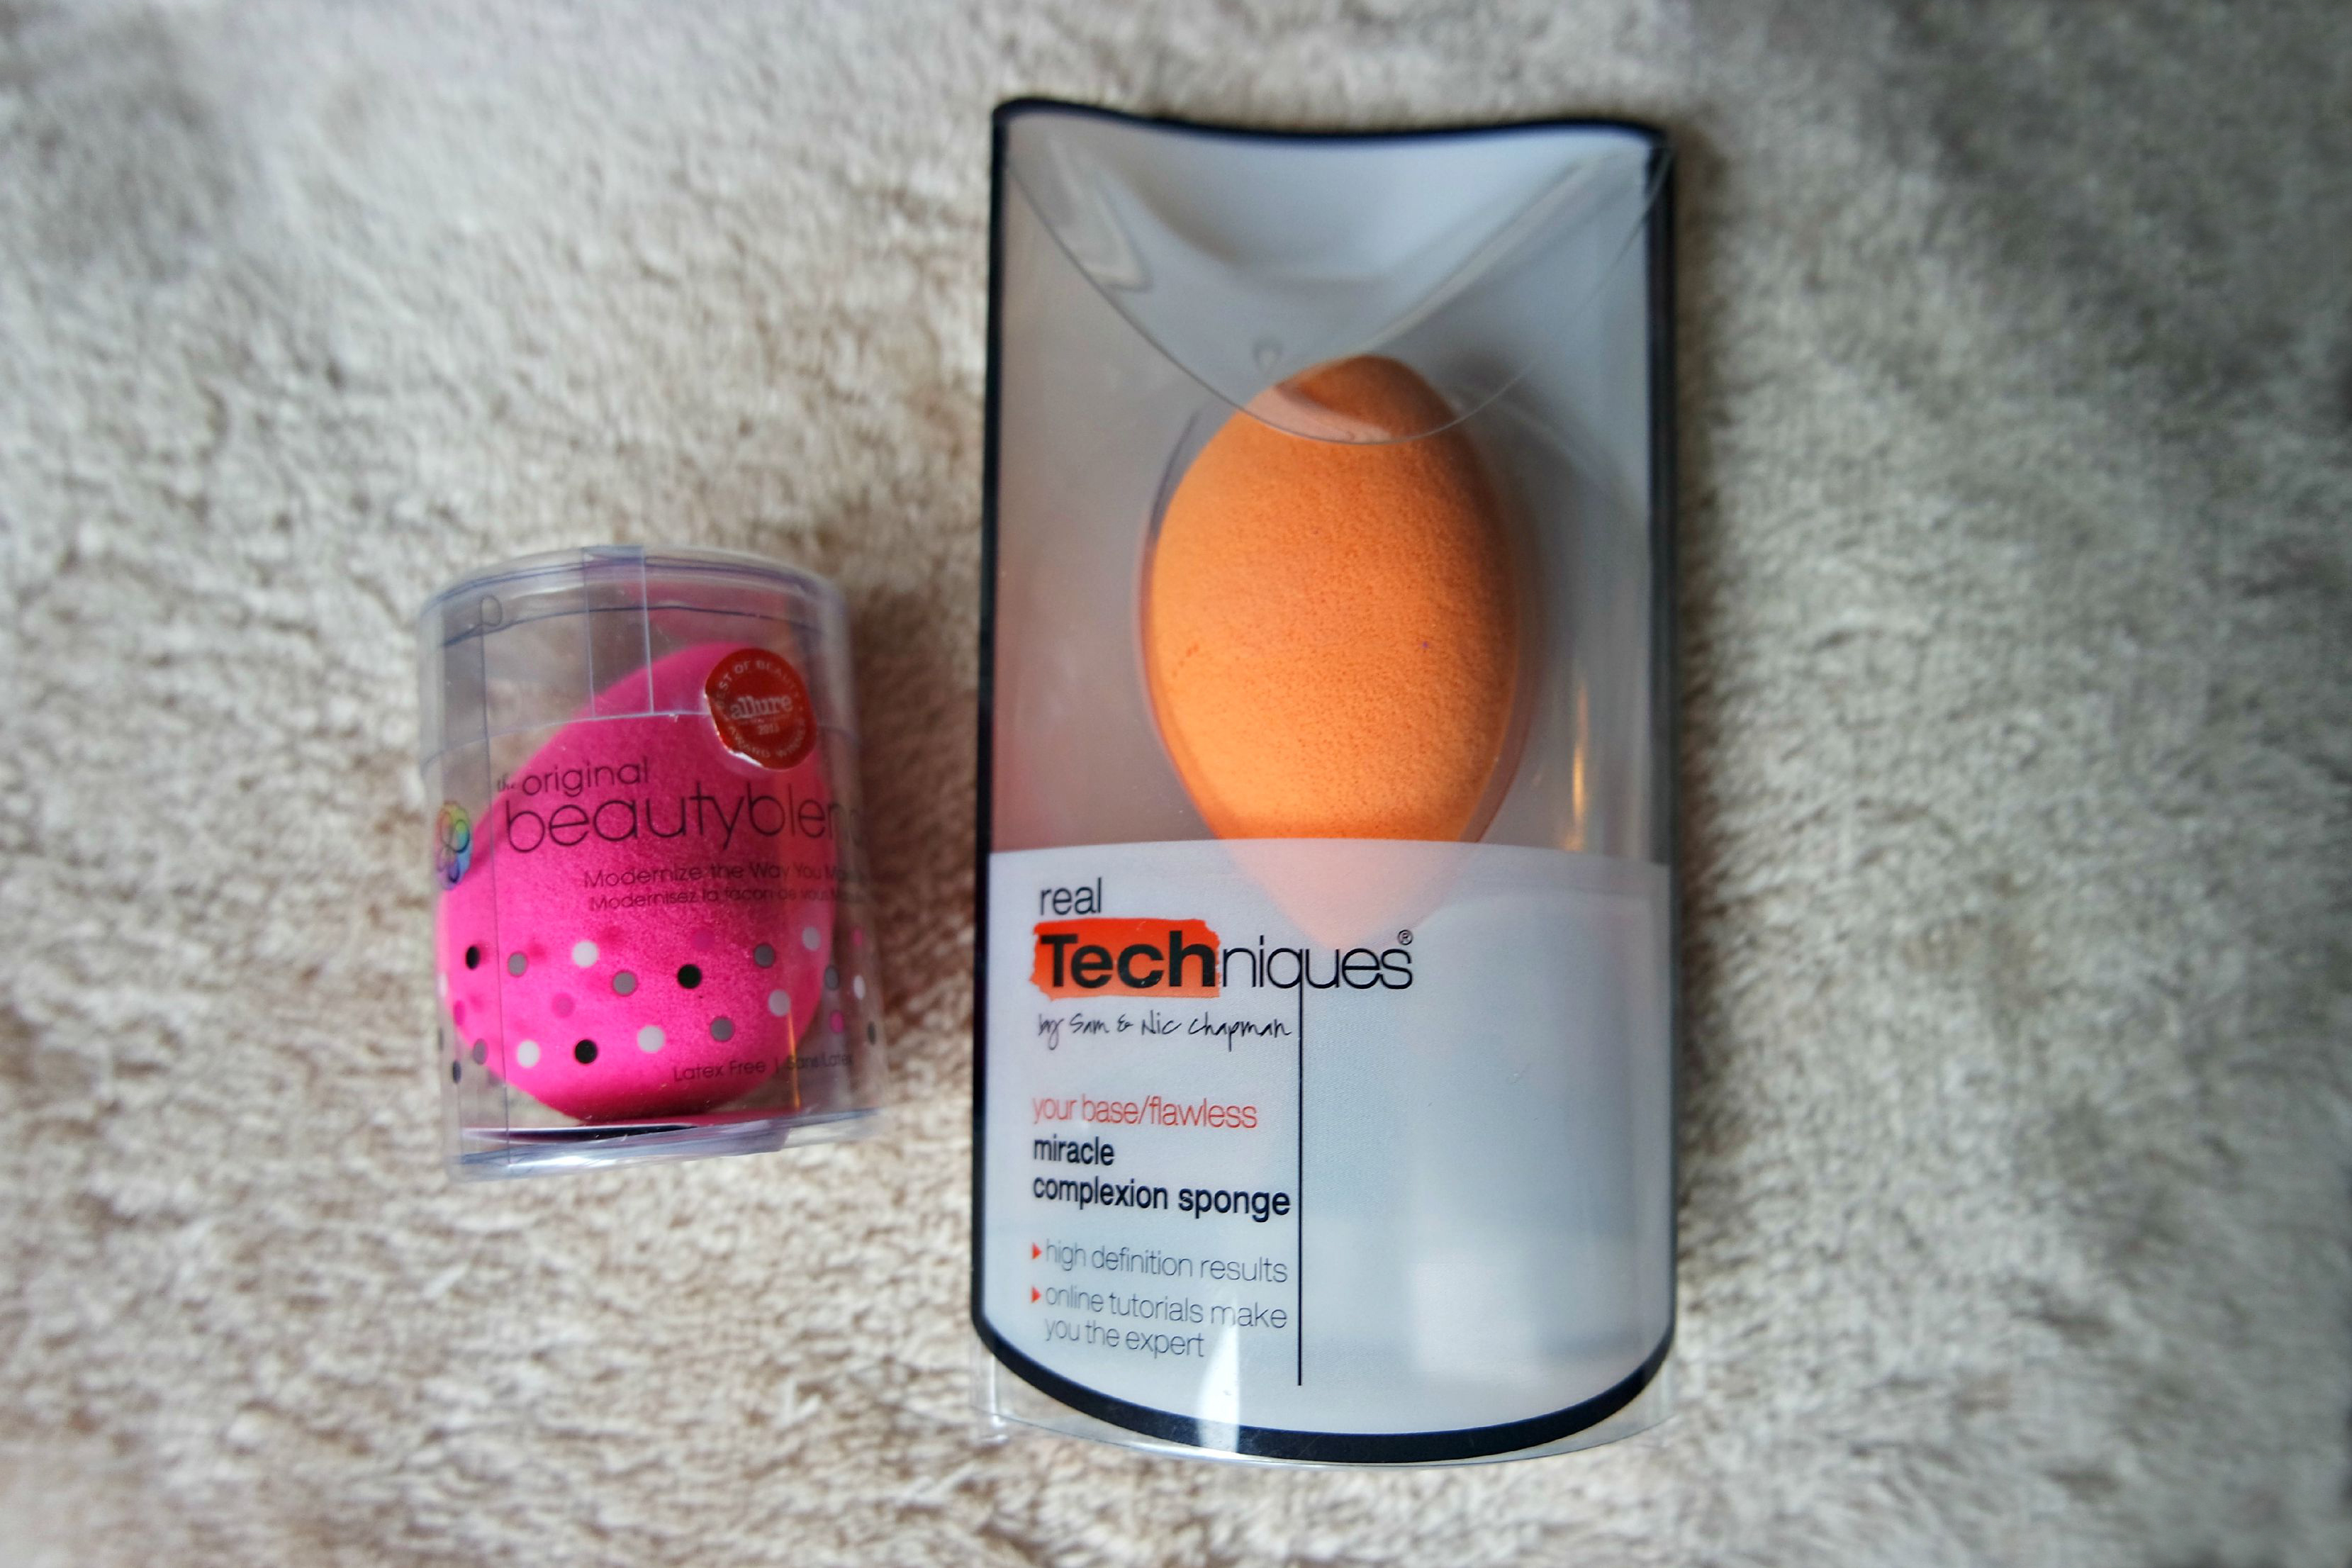 Real techniques beauty blender review